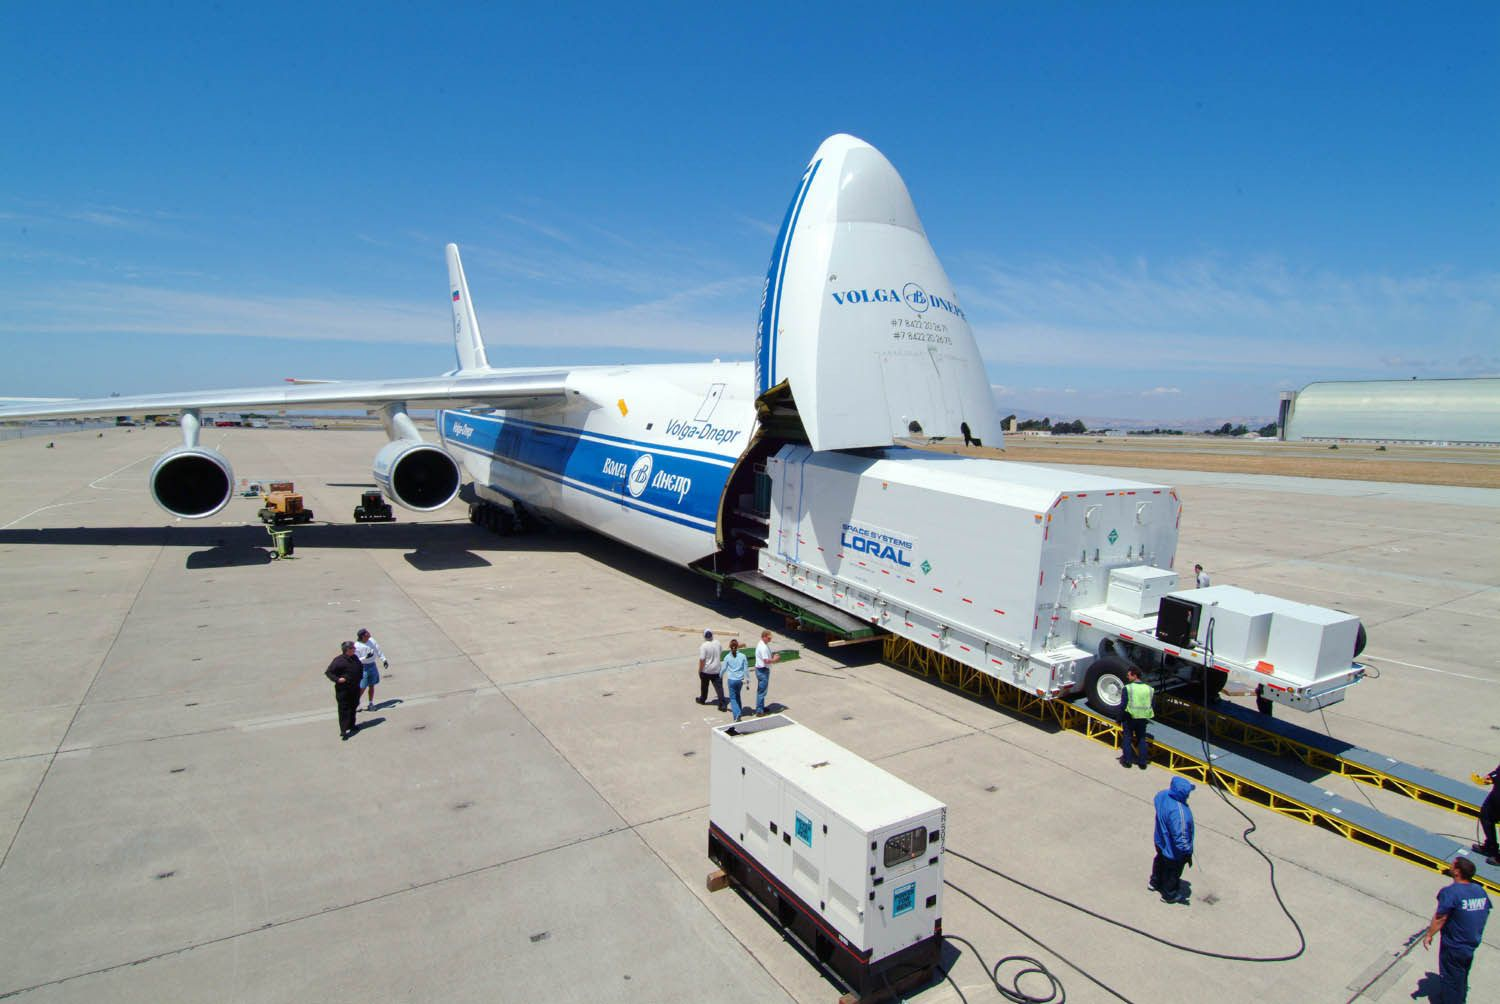 An 124 Cargo Plane   Cargo/Seaplanes   Pinterest   Jets, What is ...